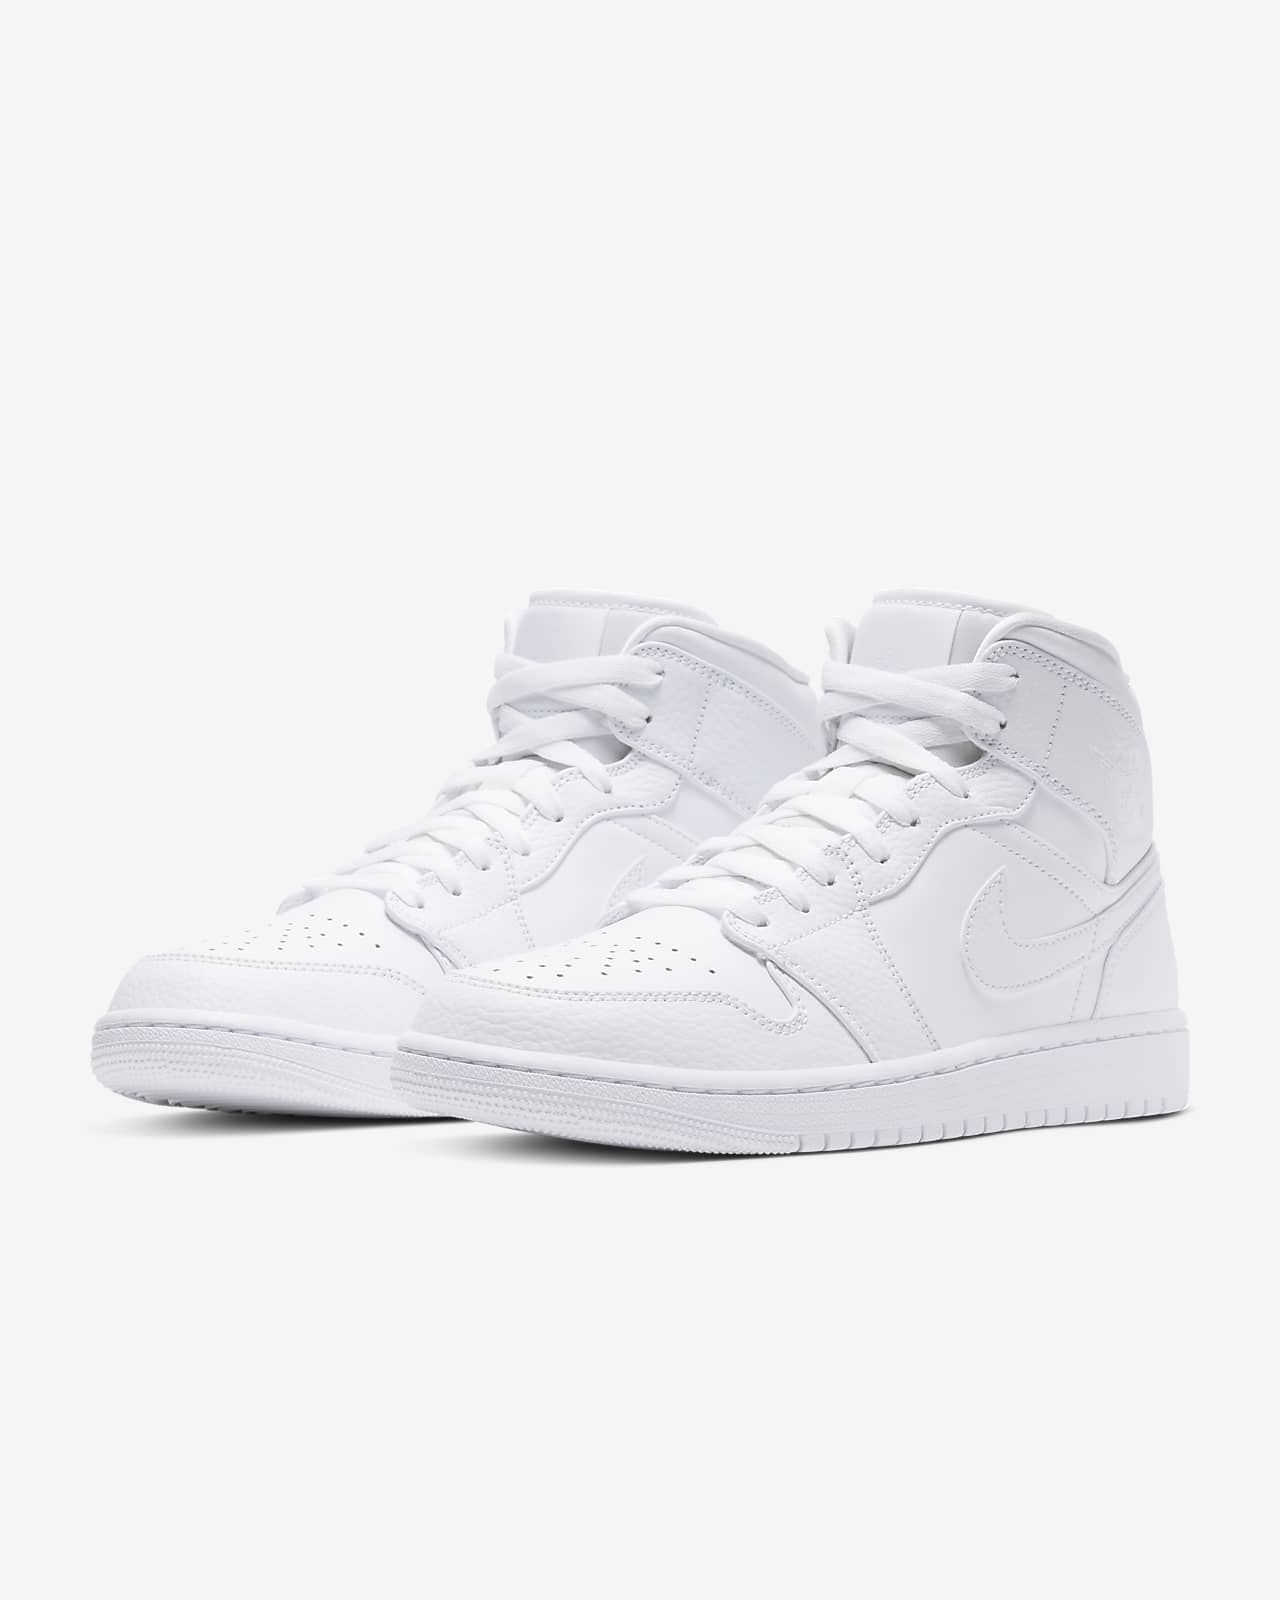 sneakers air jordan 1 mid